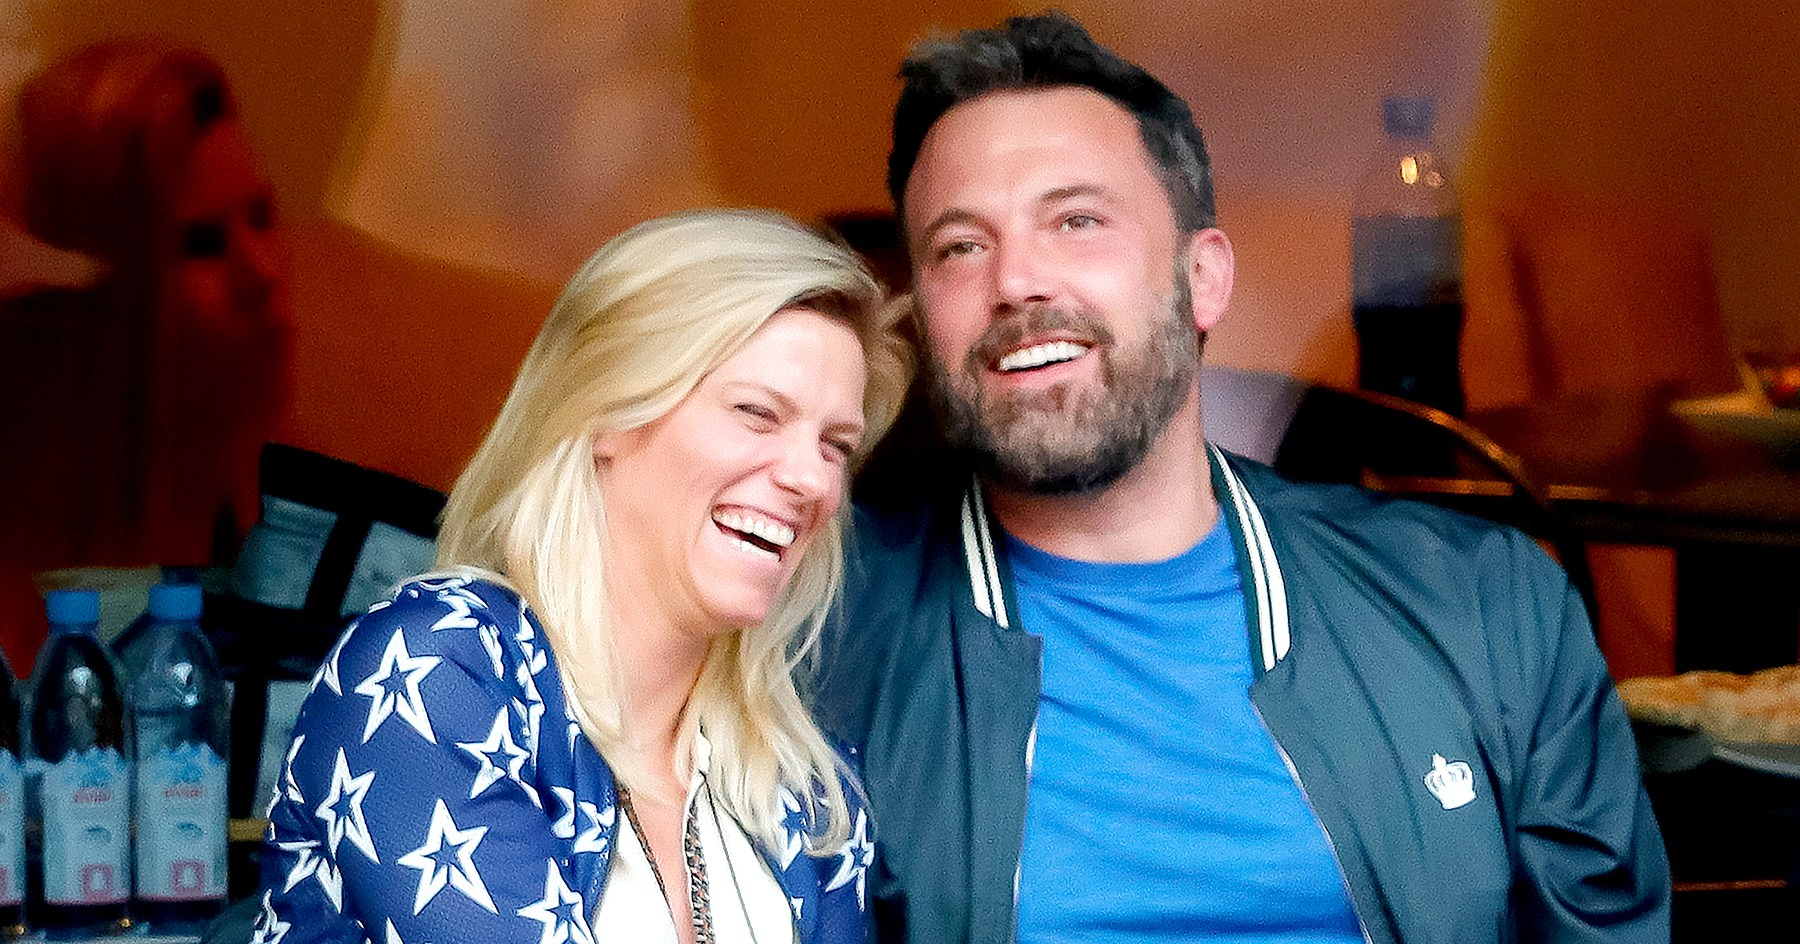 Emmys 2017: Ben Affleck 'Jumped Up and Cheered' When Girlfriend Lindsay Shookus, 'SNL' Won